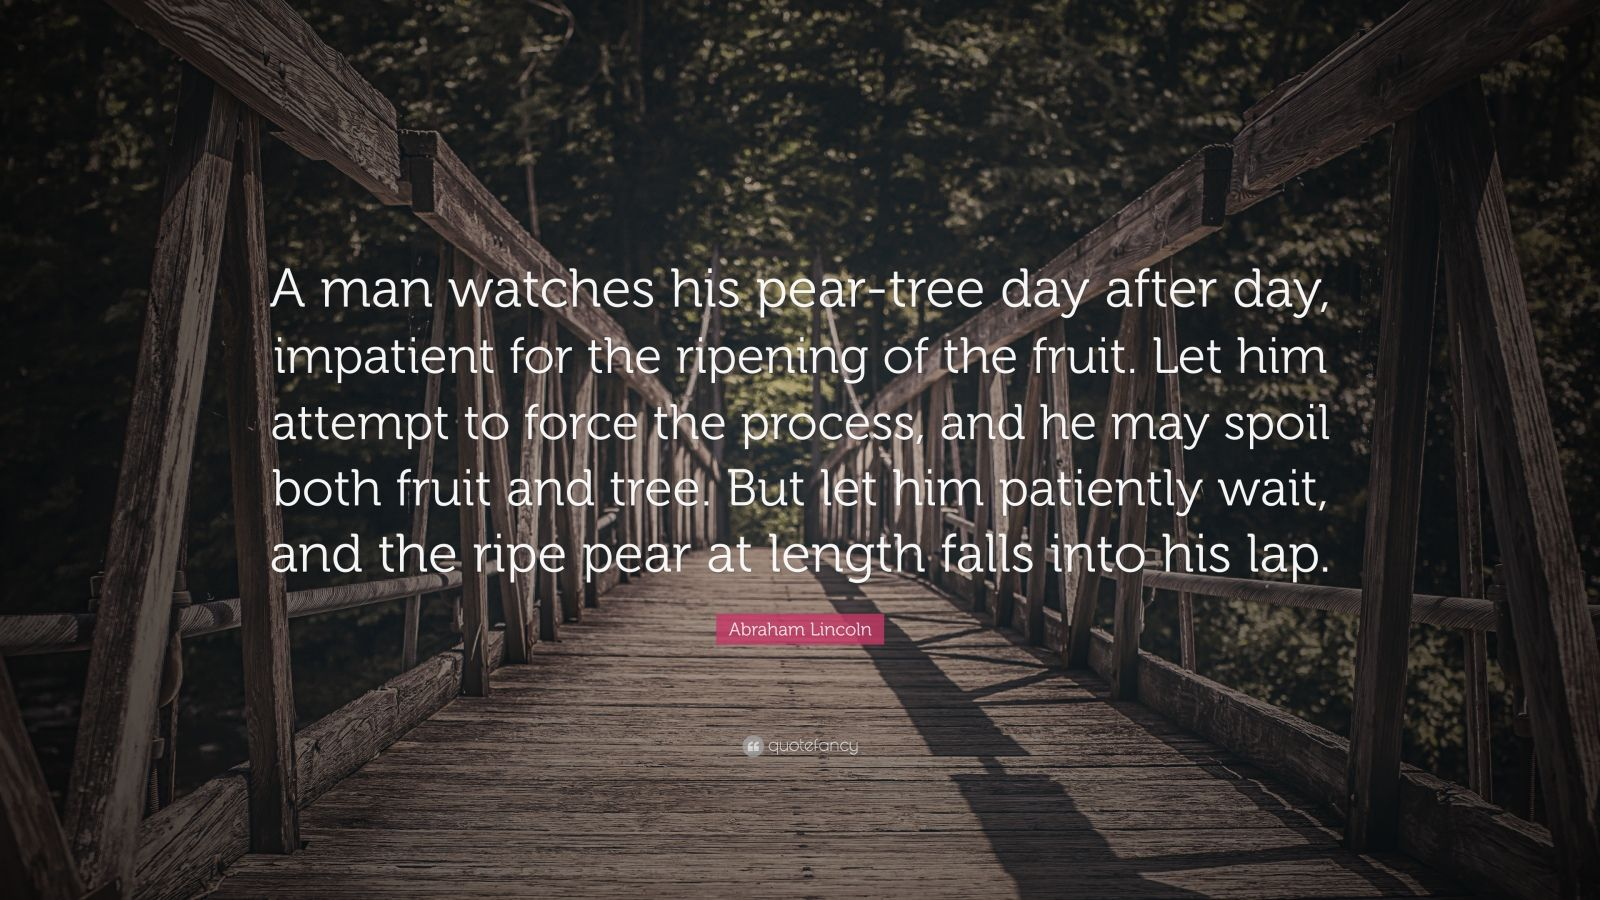 """Abraham Lincoln Quote: """"A man watches his pear-tree day after day, impatient for the ripening of the fruit. Let him attempt to force the process, and he may spoil both fruit and tree. But let him patiently wait, and the ripe pear at length falls into his lap."""""""